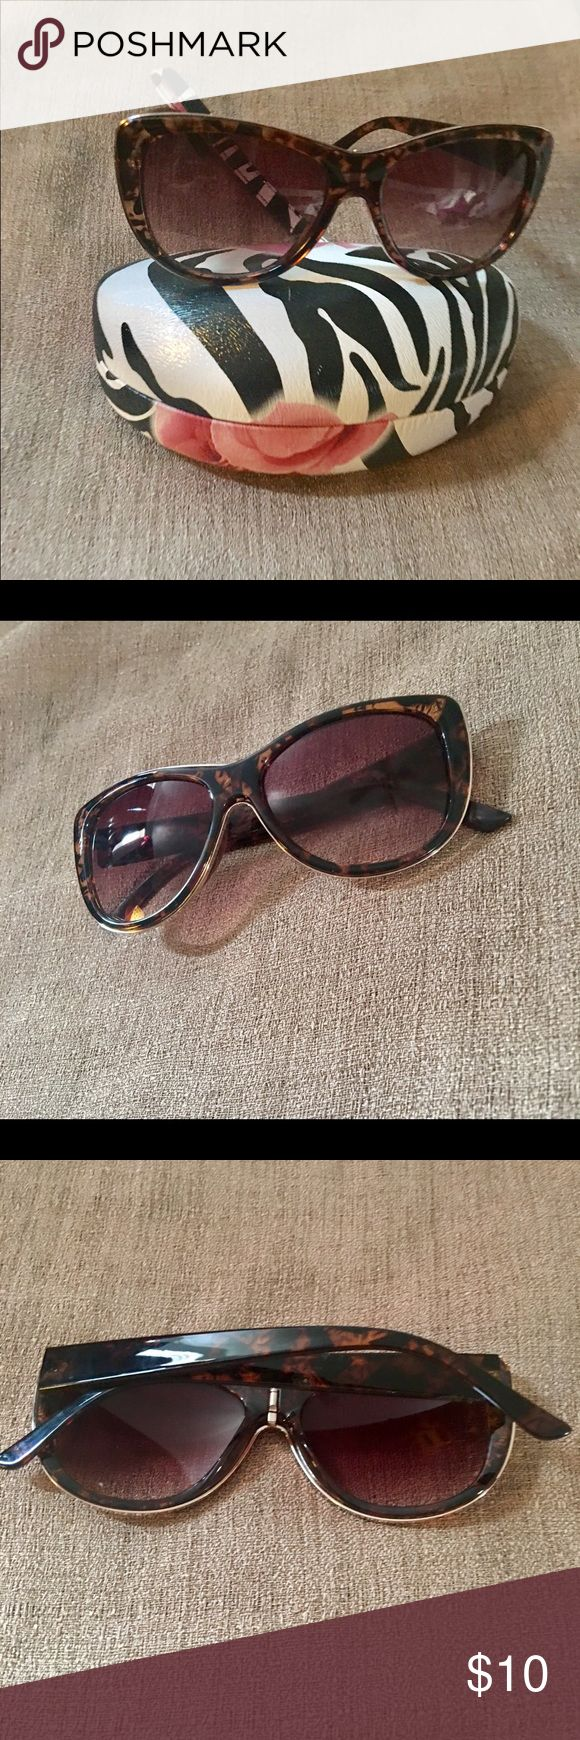 Candie's Tortoise Shell Sunglasses Faux Tortoise Shell Cat eye Sunglasses NWOT, Free Case included in the Price.💕🎁 Candie's Accessories Glasses